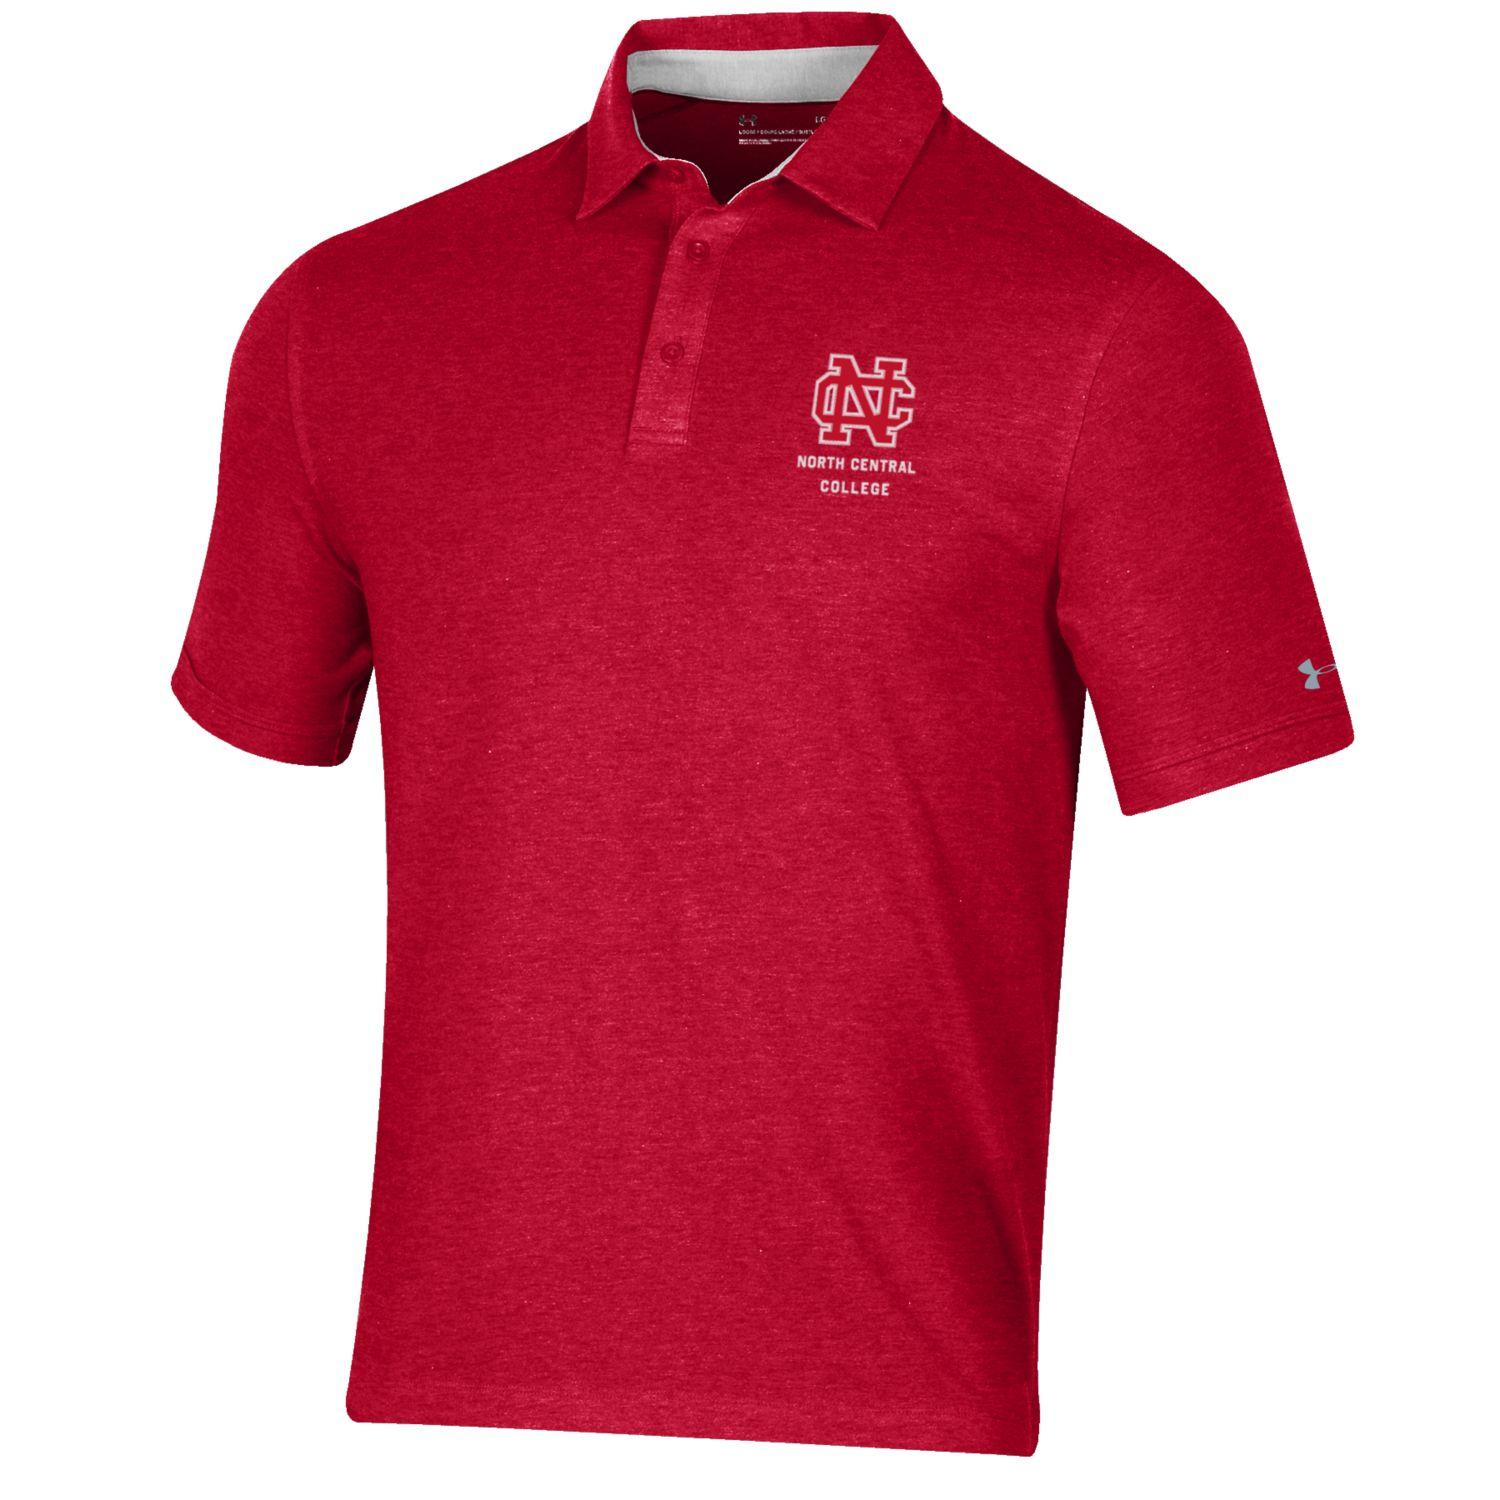 Image for the Charged Cotton Polo by Under Armour product